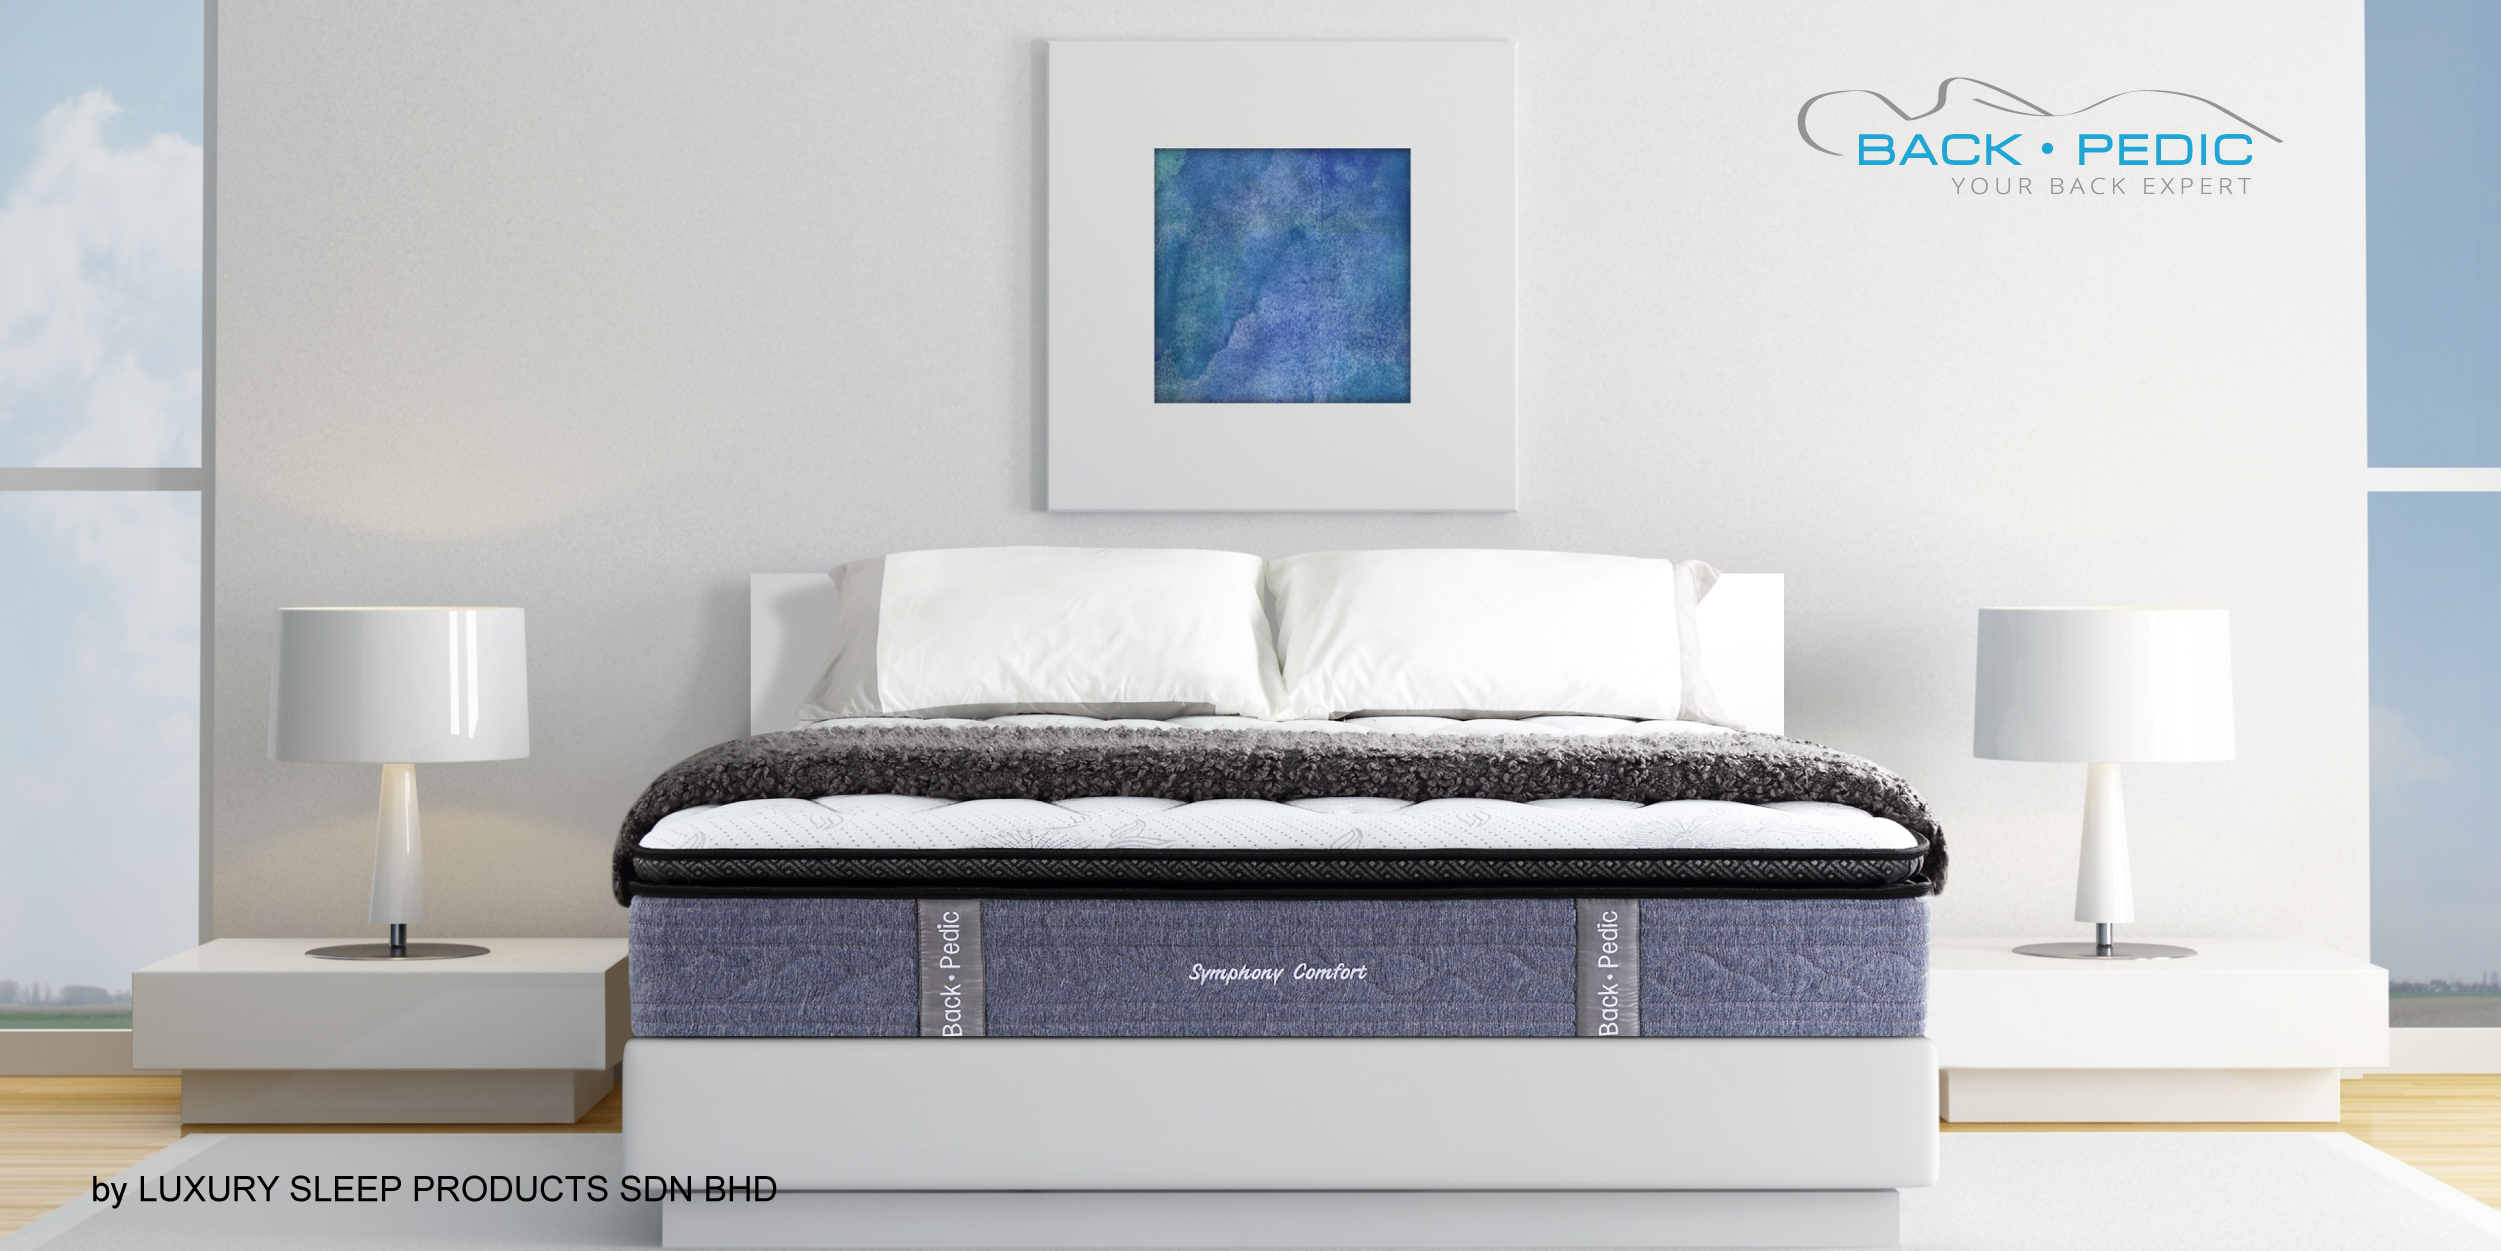 Luxury Sleep - Back pedic